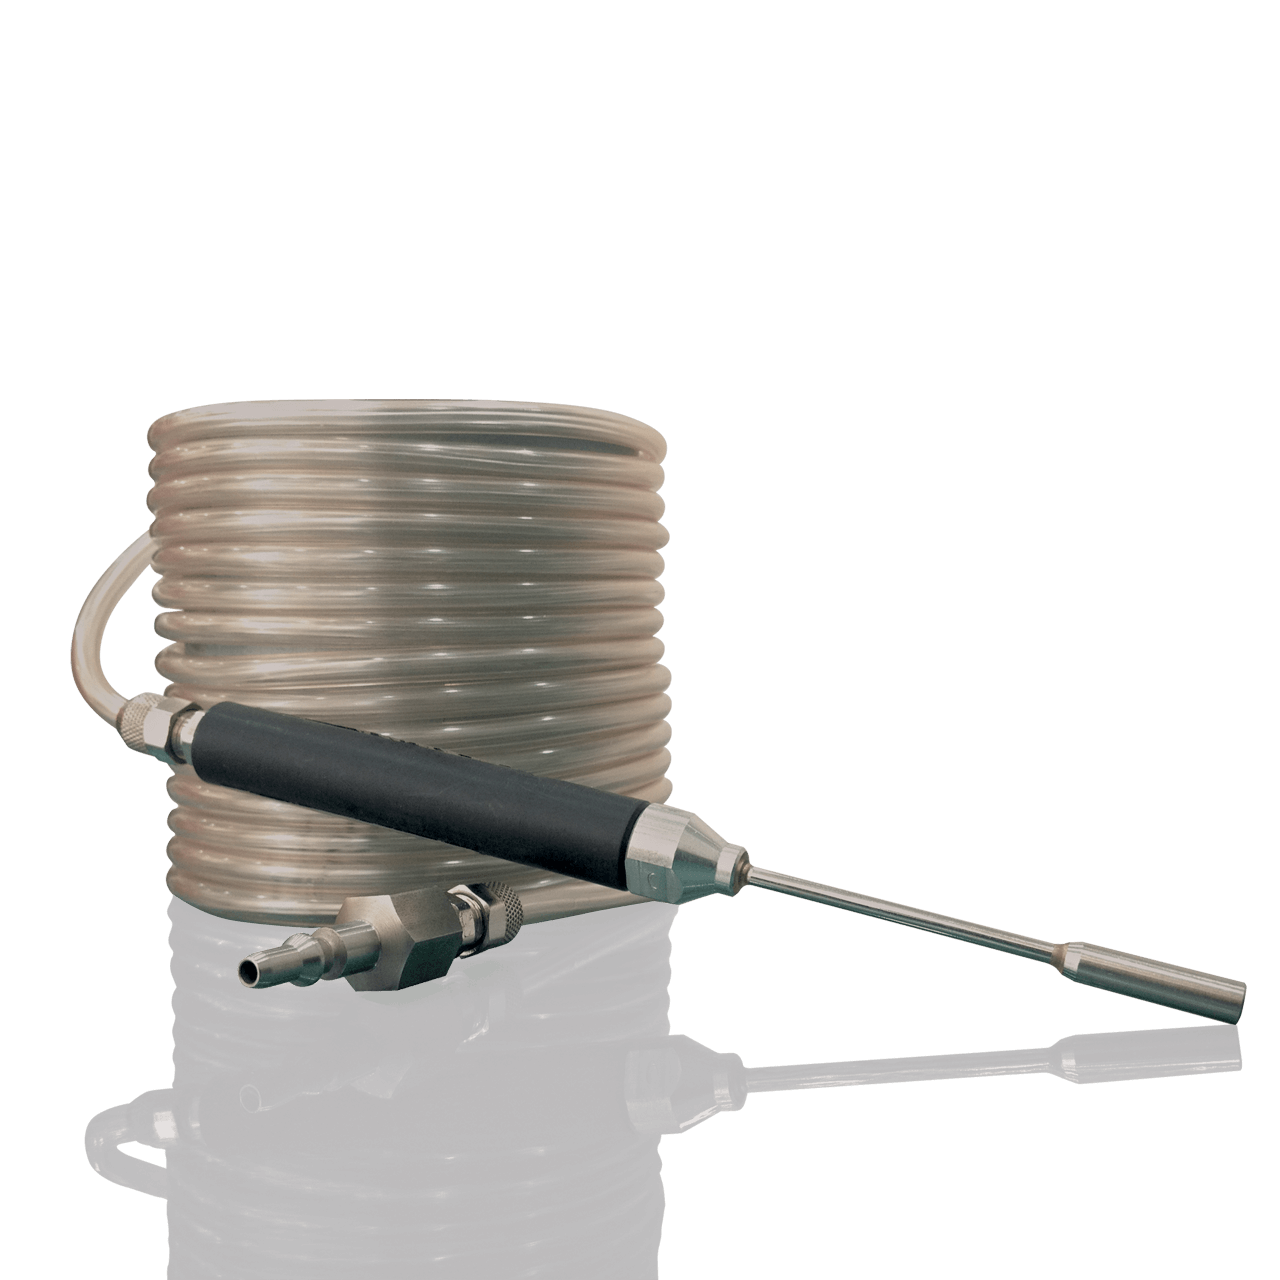 Accessories for operation of your leak detector